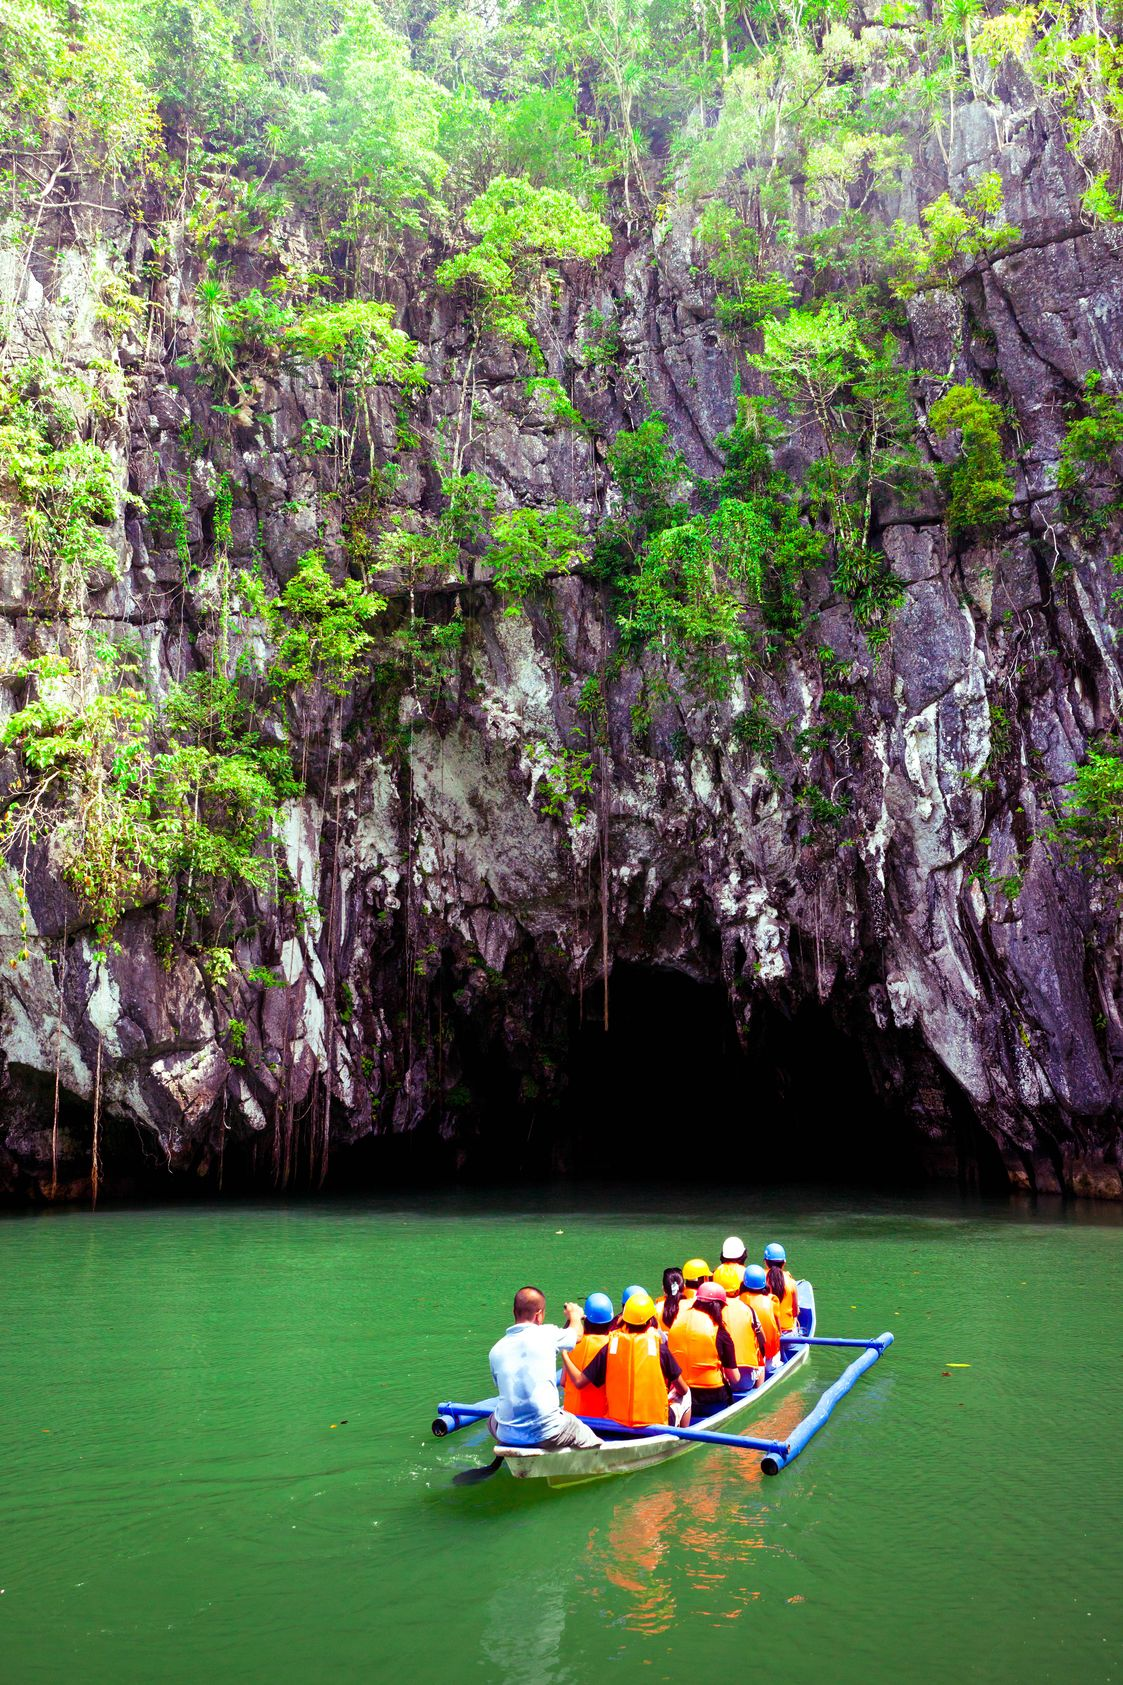 Boat laden with tourists sail along a river towards a gaping cavern beneath limestone cliffs in Puerto Princesa Underground River, Palawan